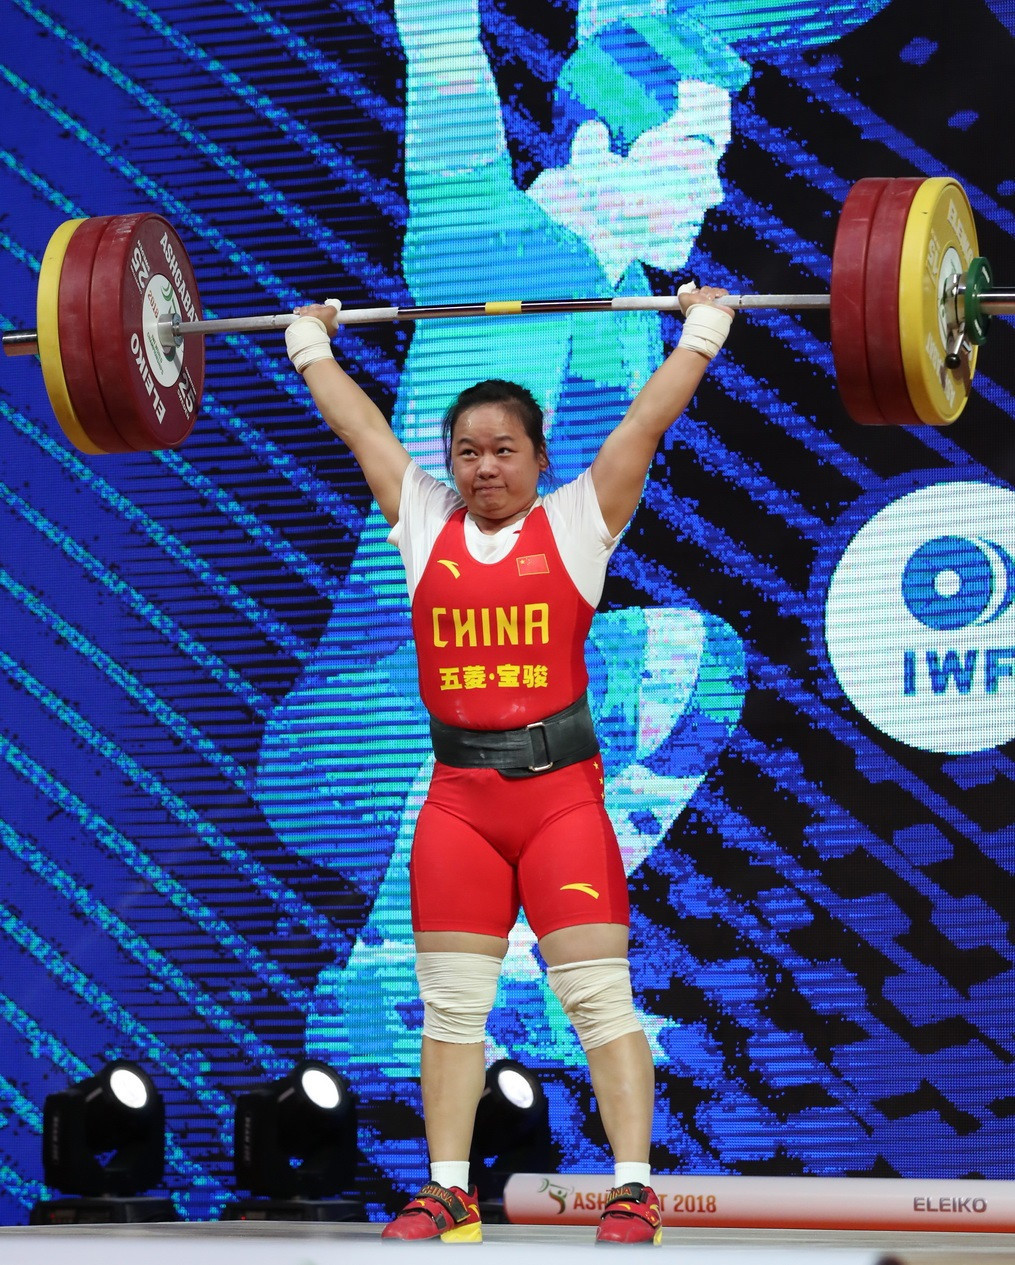 China's Zhang Wangli managed world standards in the clean and jerk and total on her way to securing all three gold medals at the IWF World Championships in the women's 71kg event ©IWF